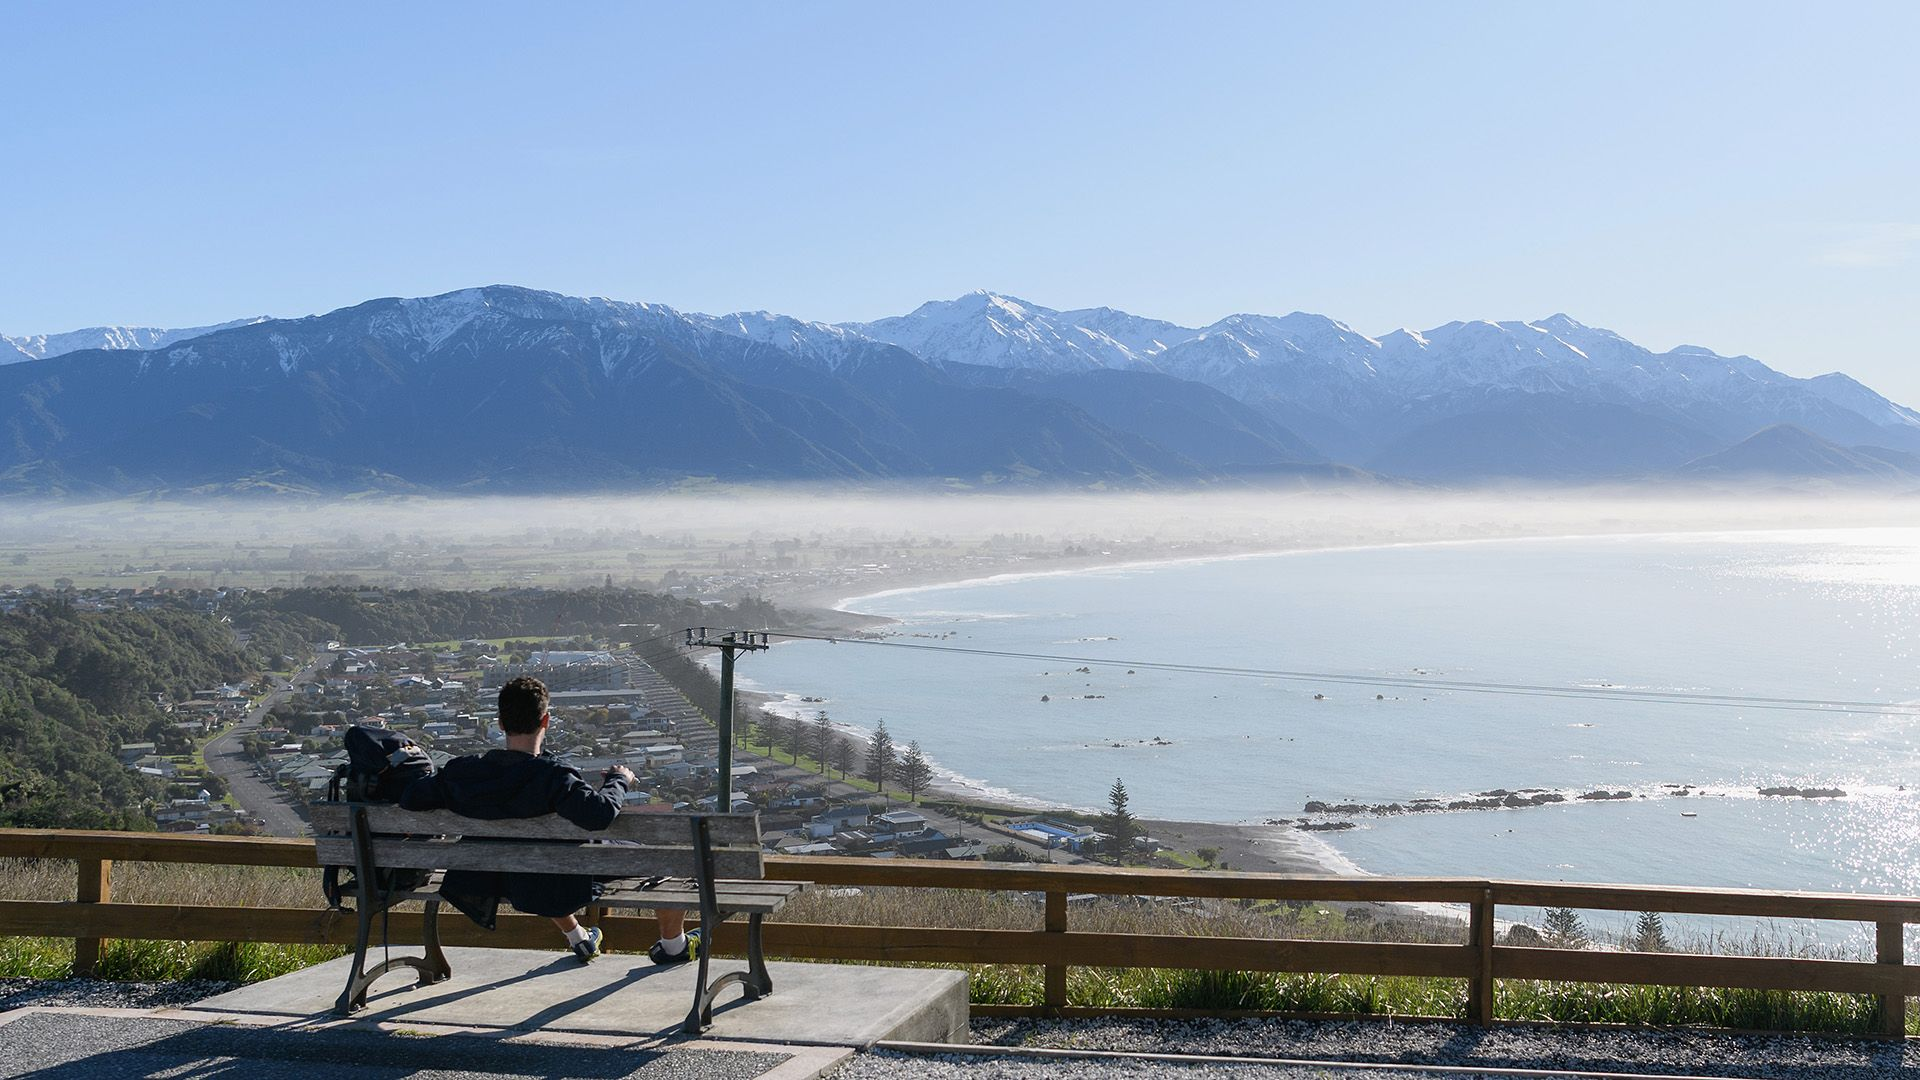 The New Zealand town of Kaikoura is one of many that relies on tourism – an extra holiday could provide a boost from domestic visitors (Credit: Getty Images)